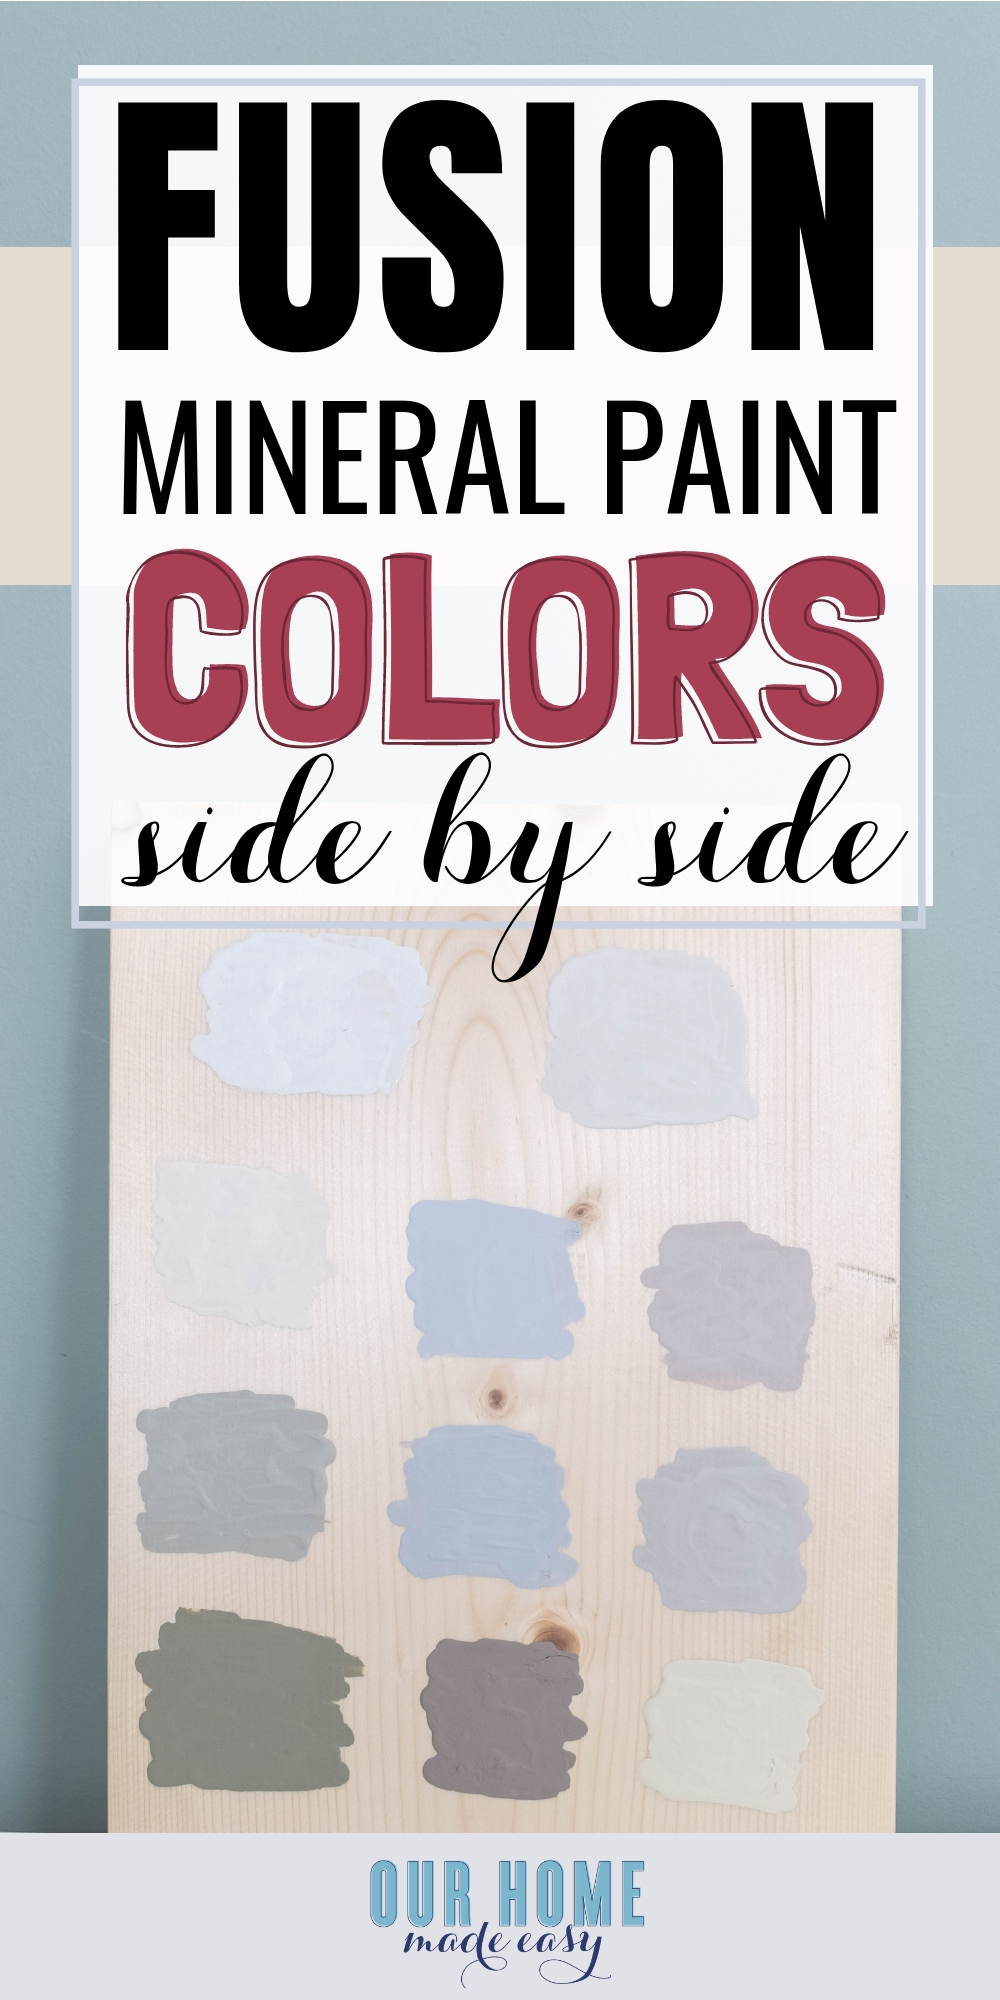 See 11 of the most popular neutral Fusion Mineral Paint colors at a glance! Skip buying your own containers and use this guide instead!